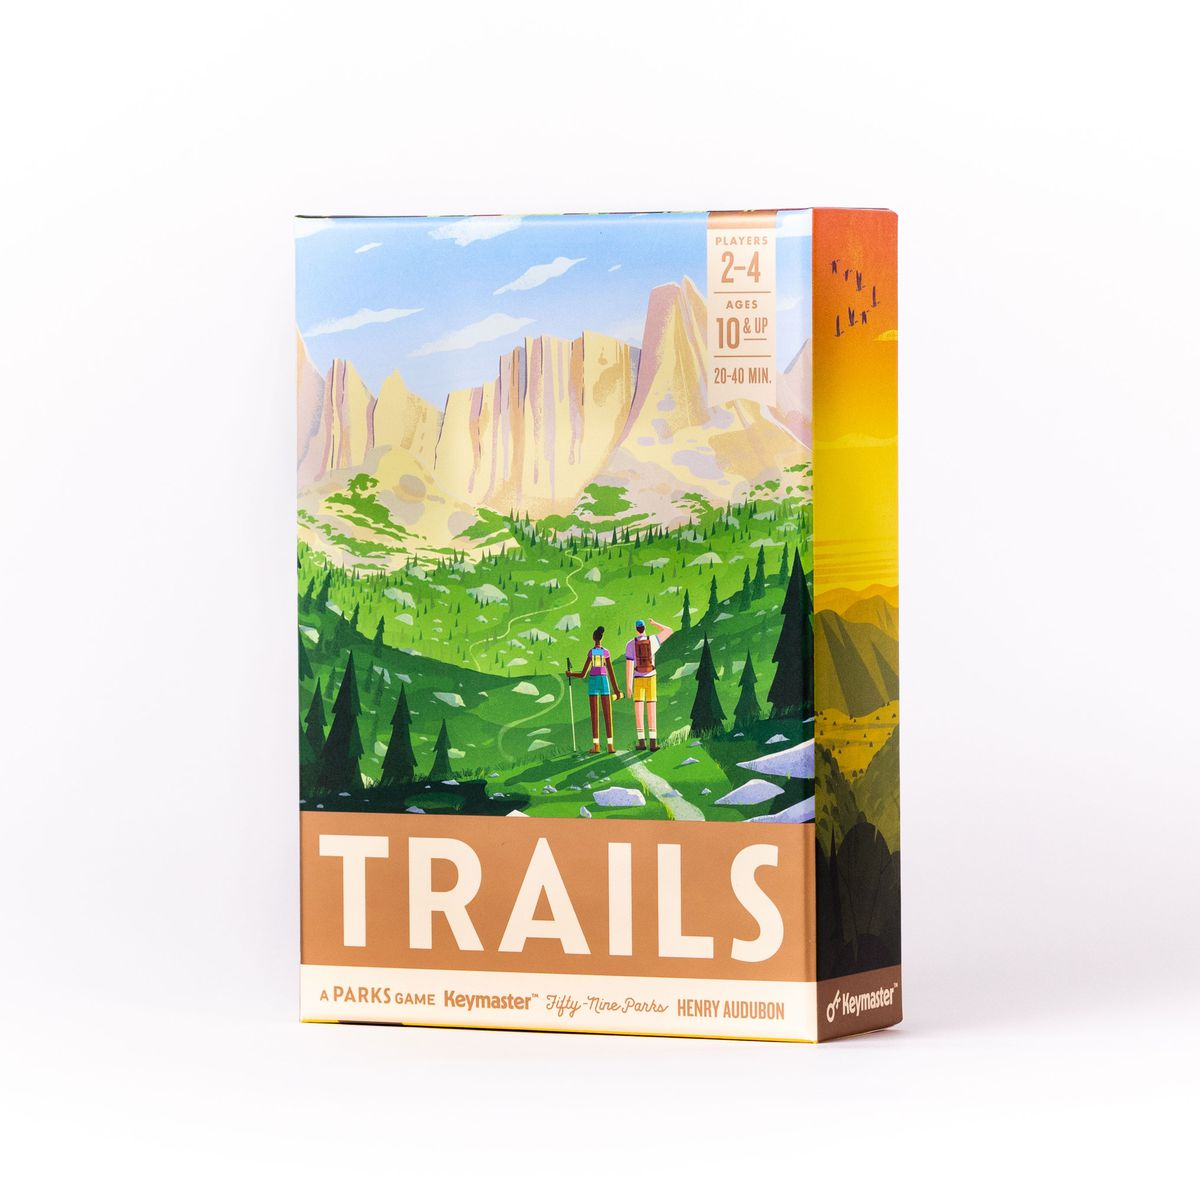 Cover art for Trails includes an image from the Fifty-Nine Parks Print Series: The Continental Divide Trail.